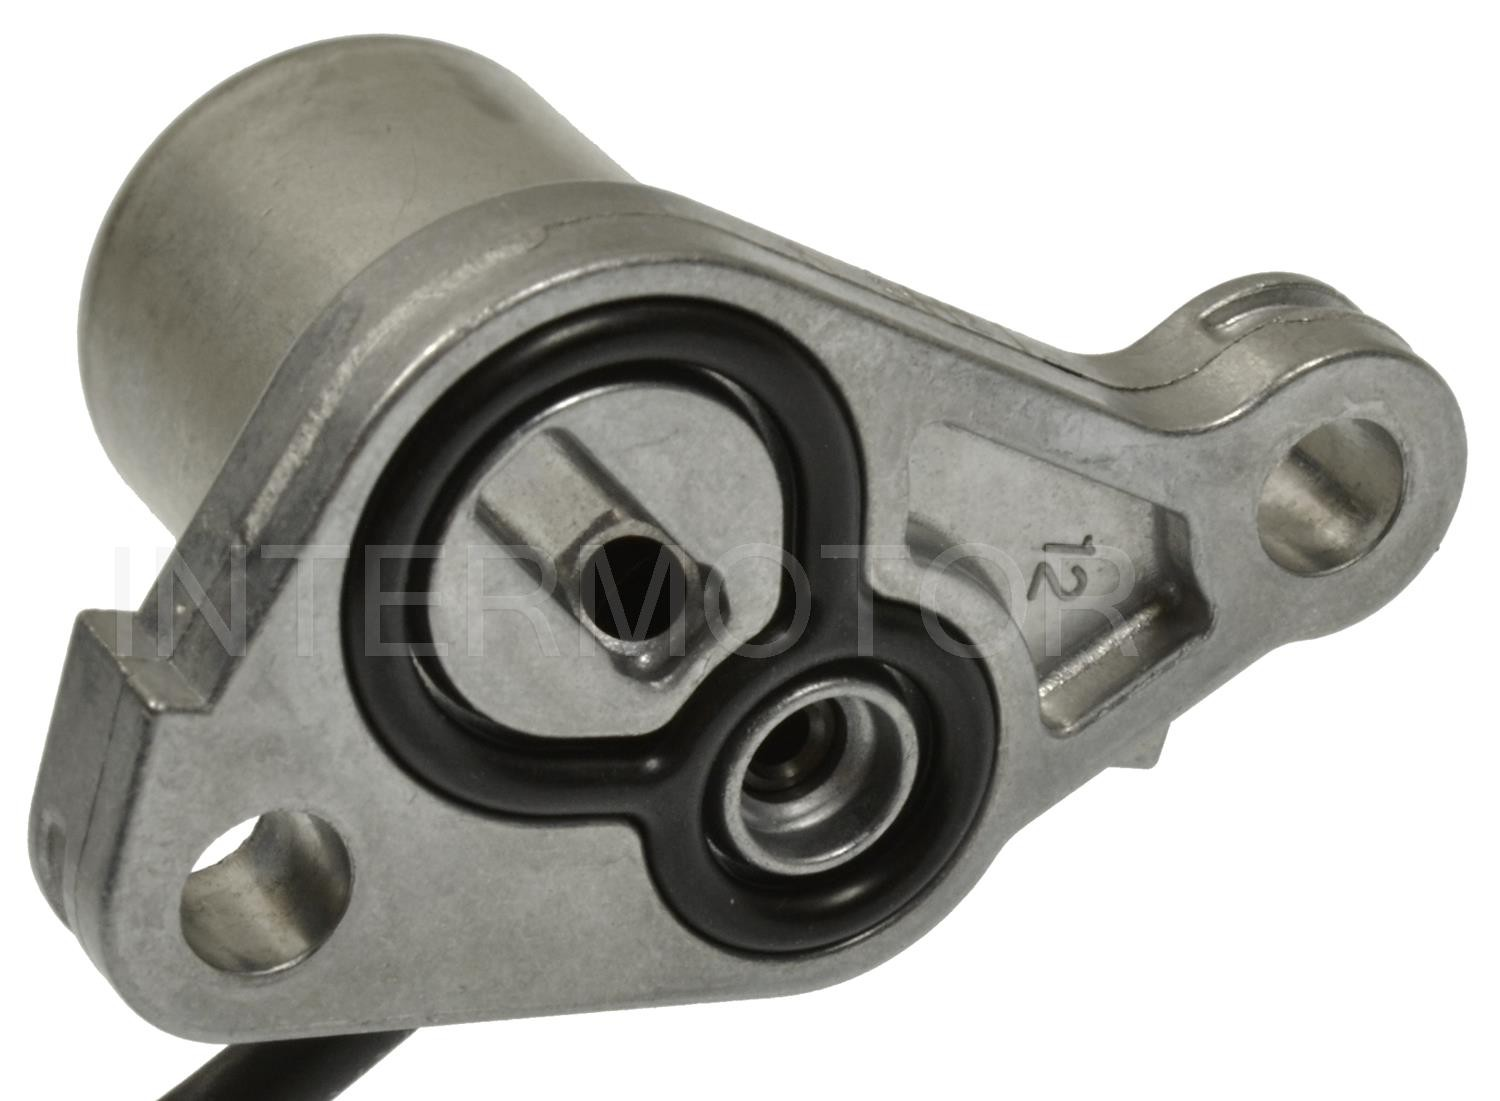 1999 Acura CL Engine Variable Timing Solenoid SI VVT225